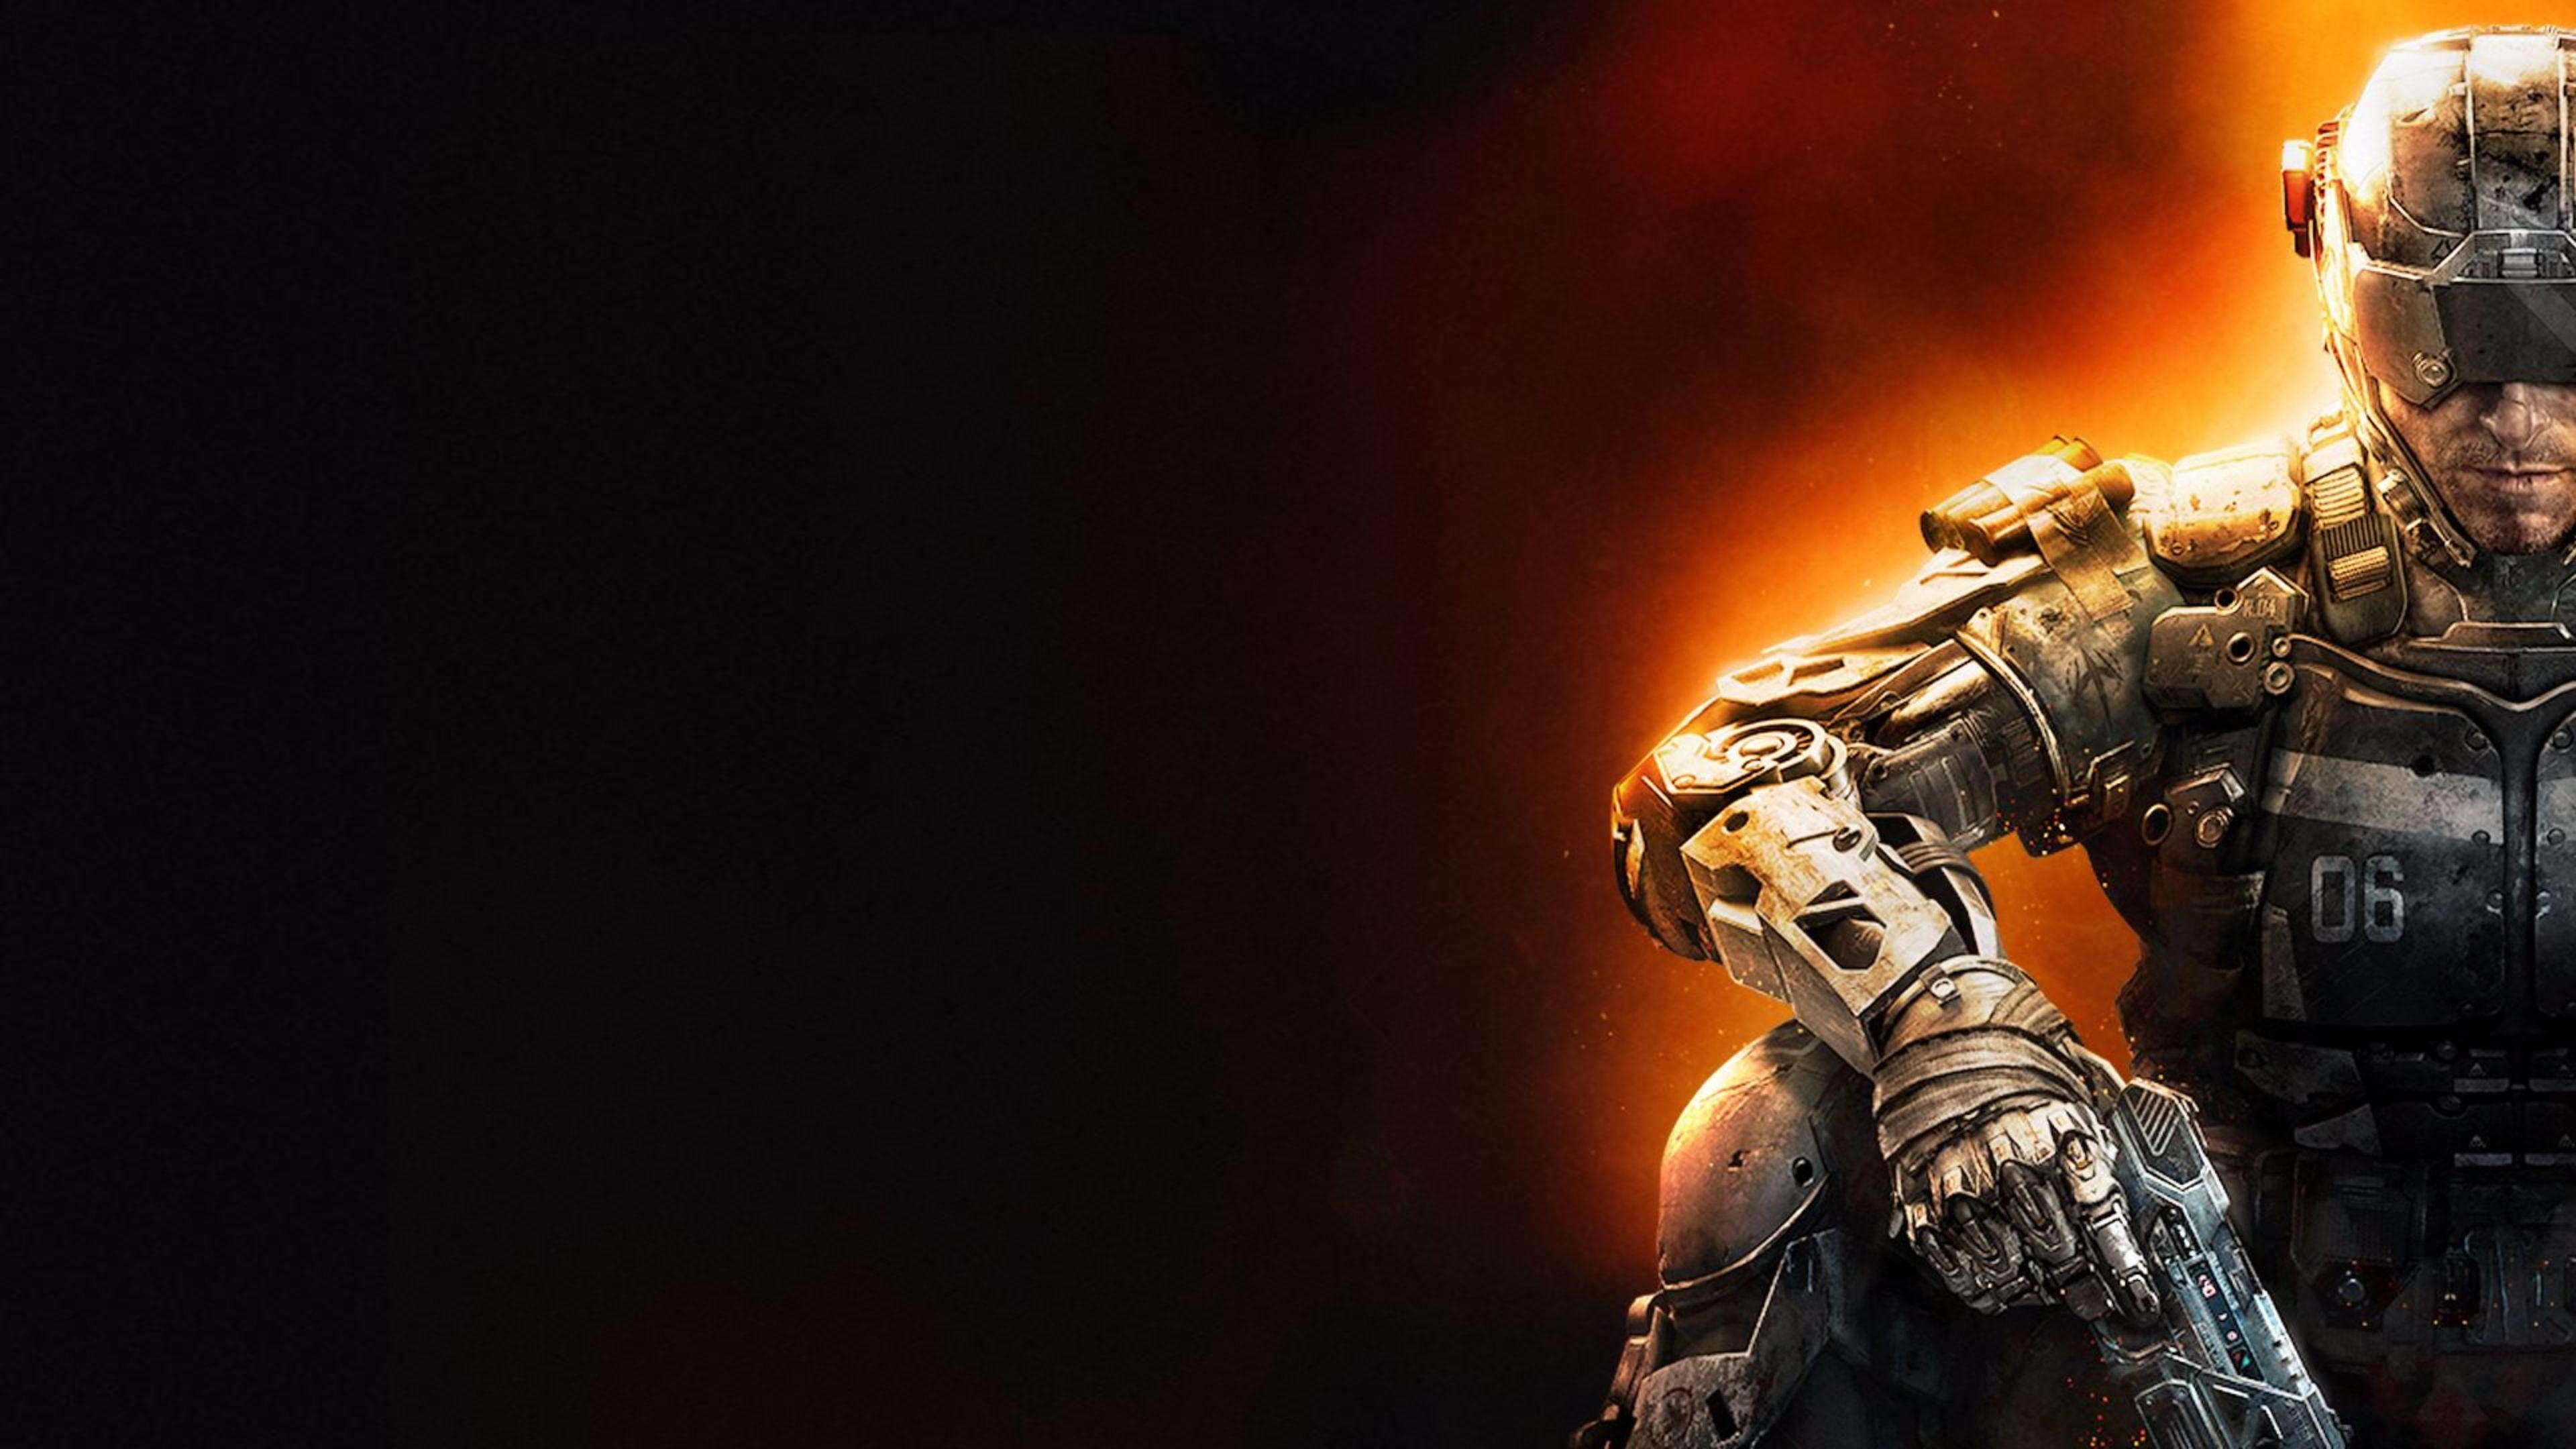 Call Of Duty Black Ops 3 Wallpaper Images - Mytwiink.com